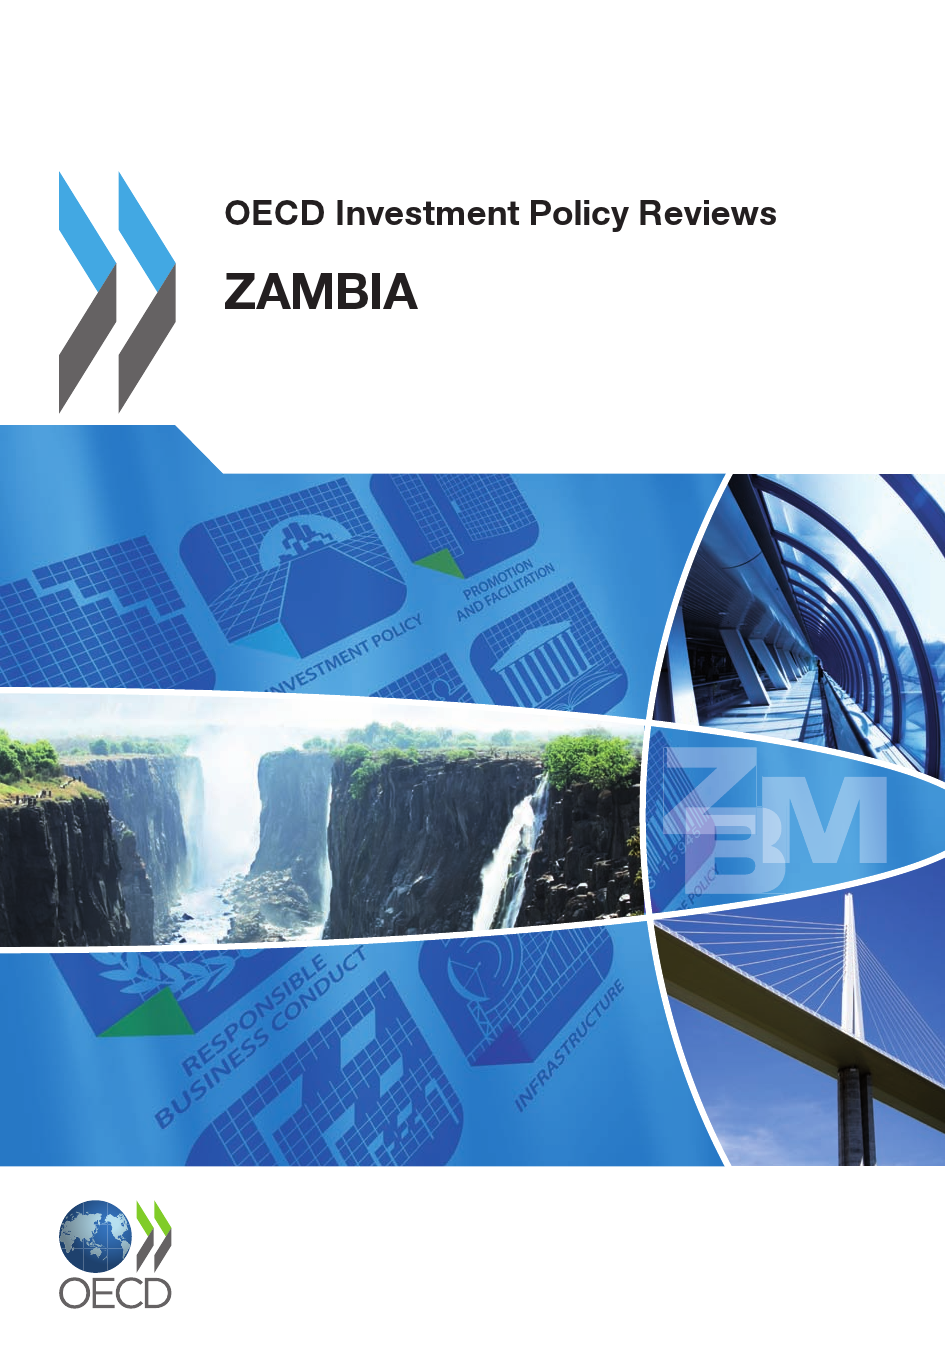 OECD Investment Policy Reviews: Zambia 2012